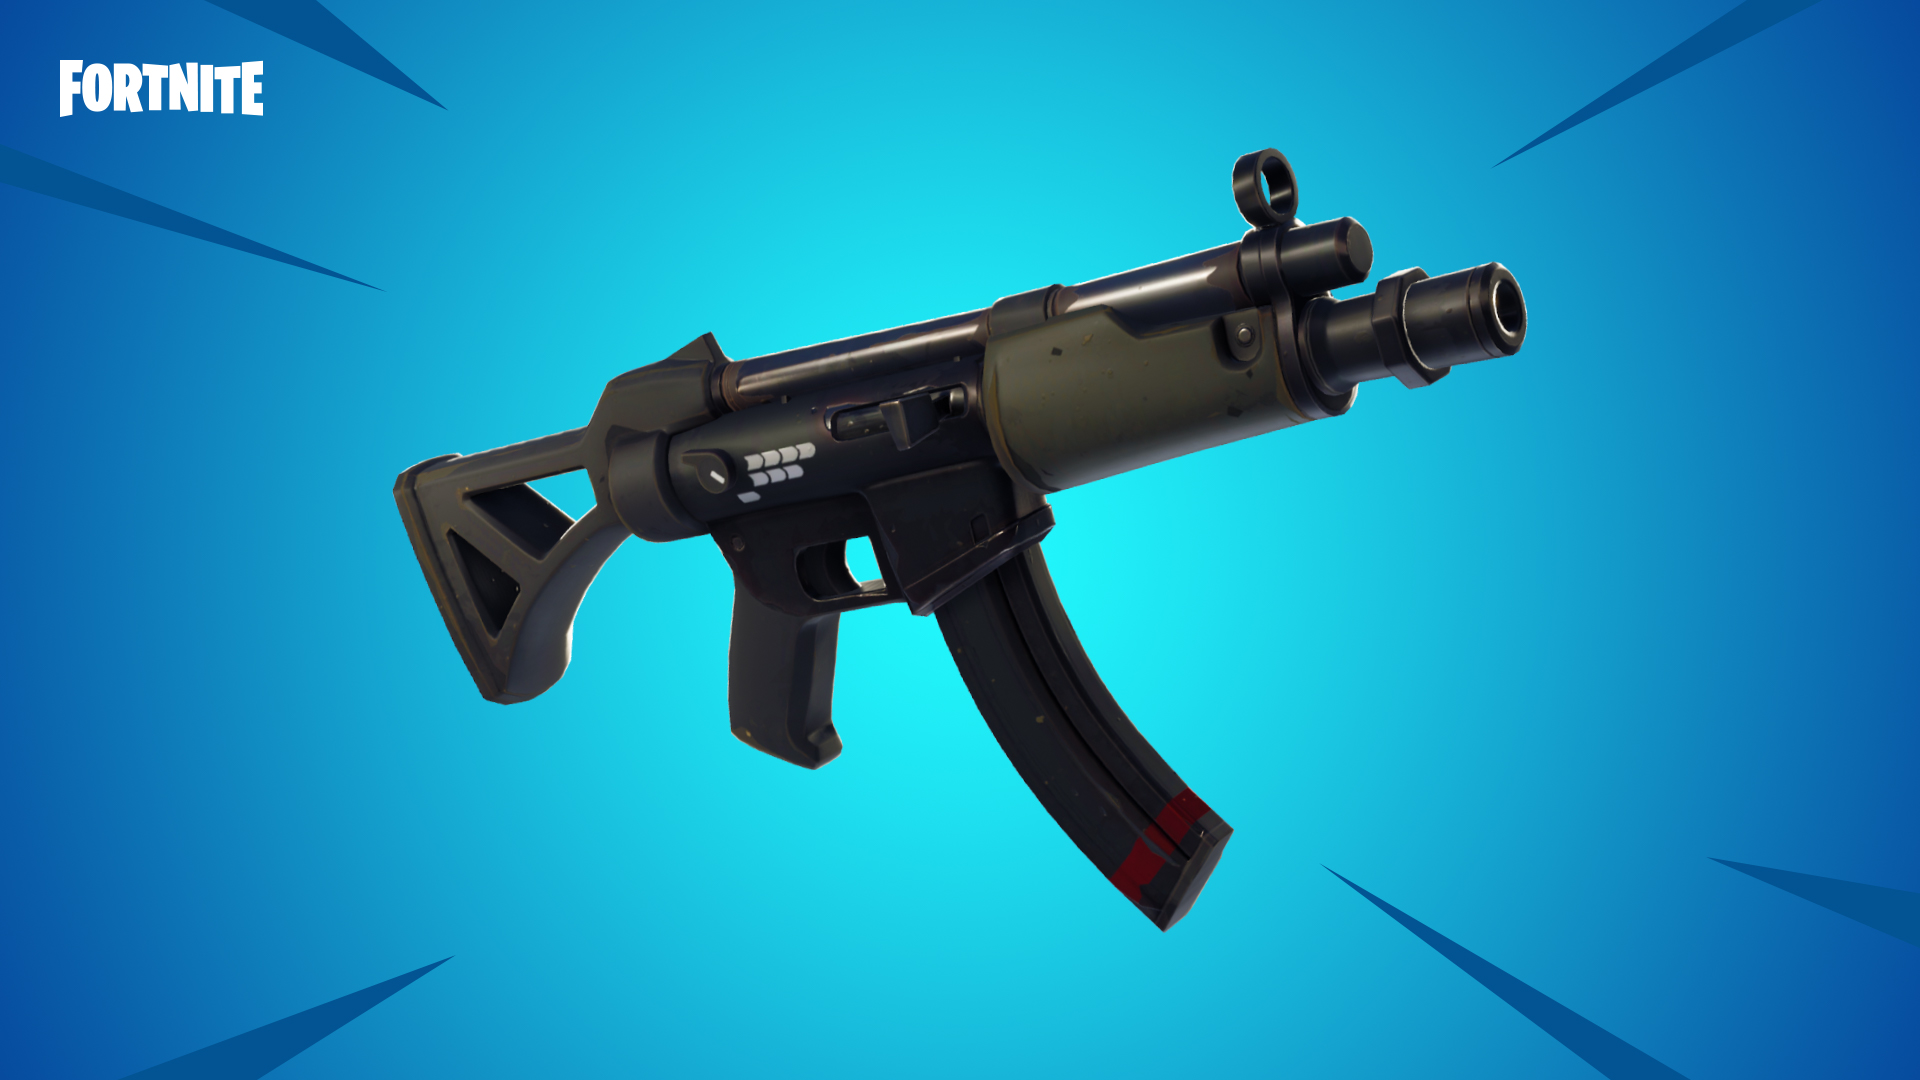 Fortnite content update v5.0 adds Submachine Gun, Typewriter Assault Rifle - but removes the ...